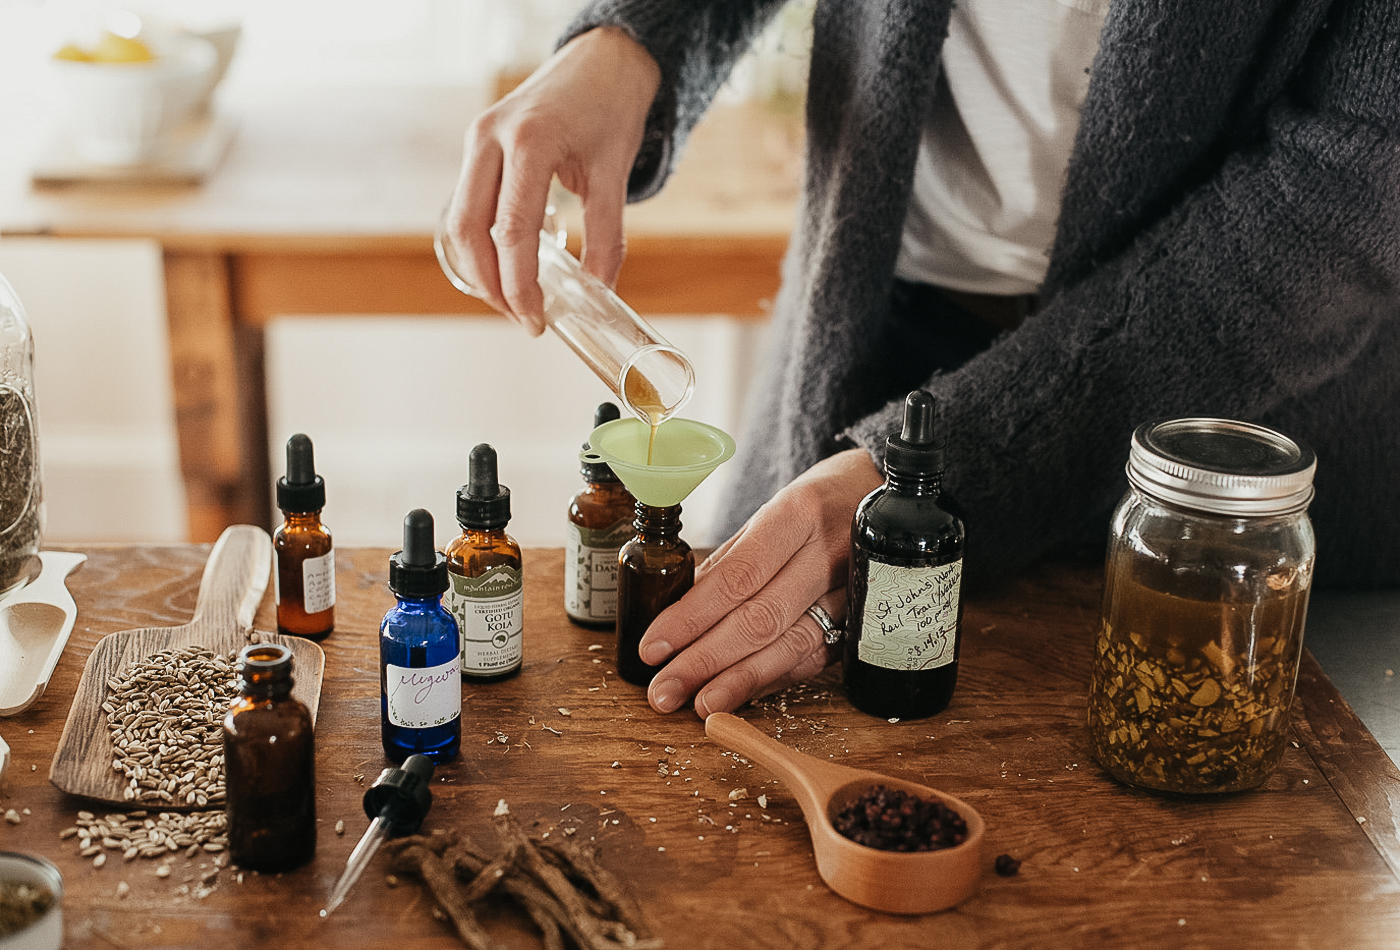 The Intermediate Herbal Course presented by Herbal Academy